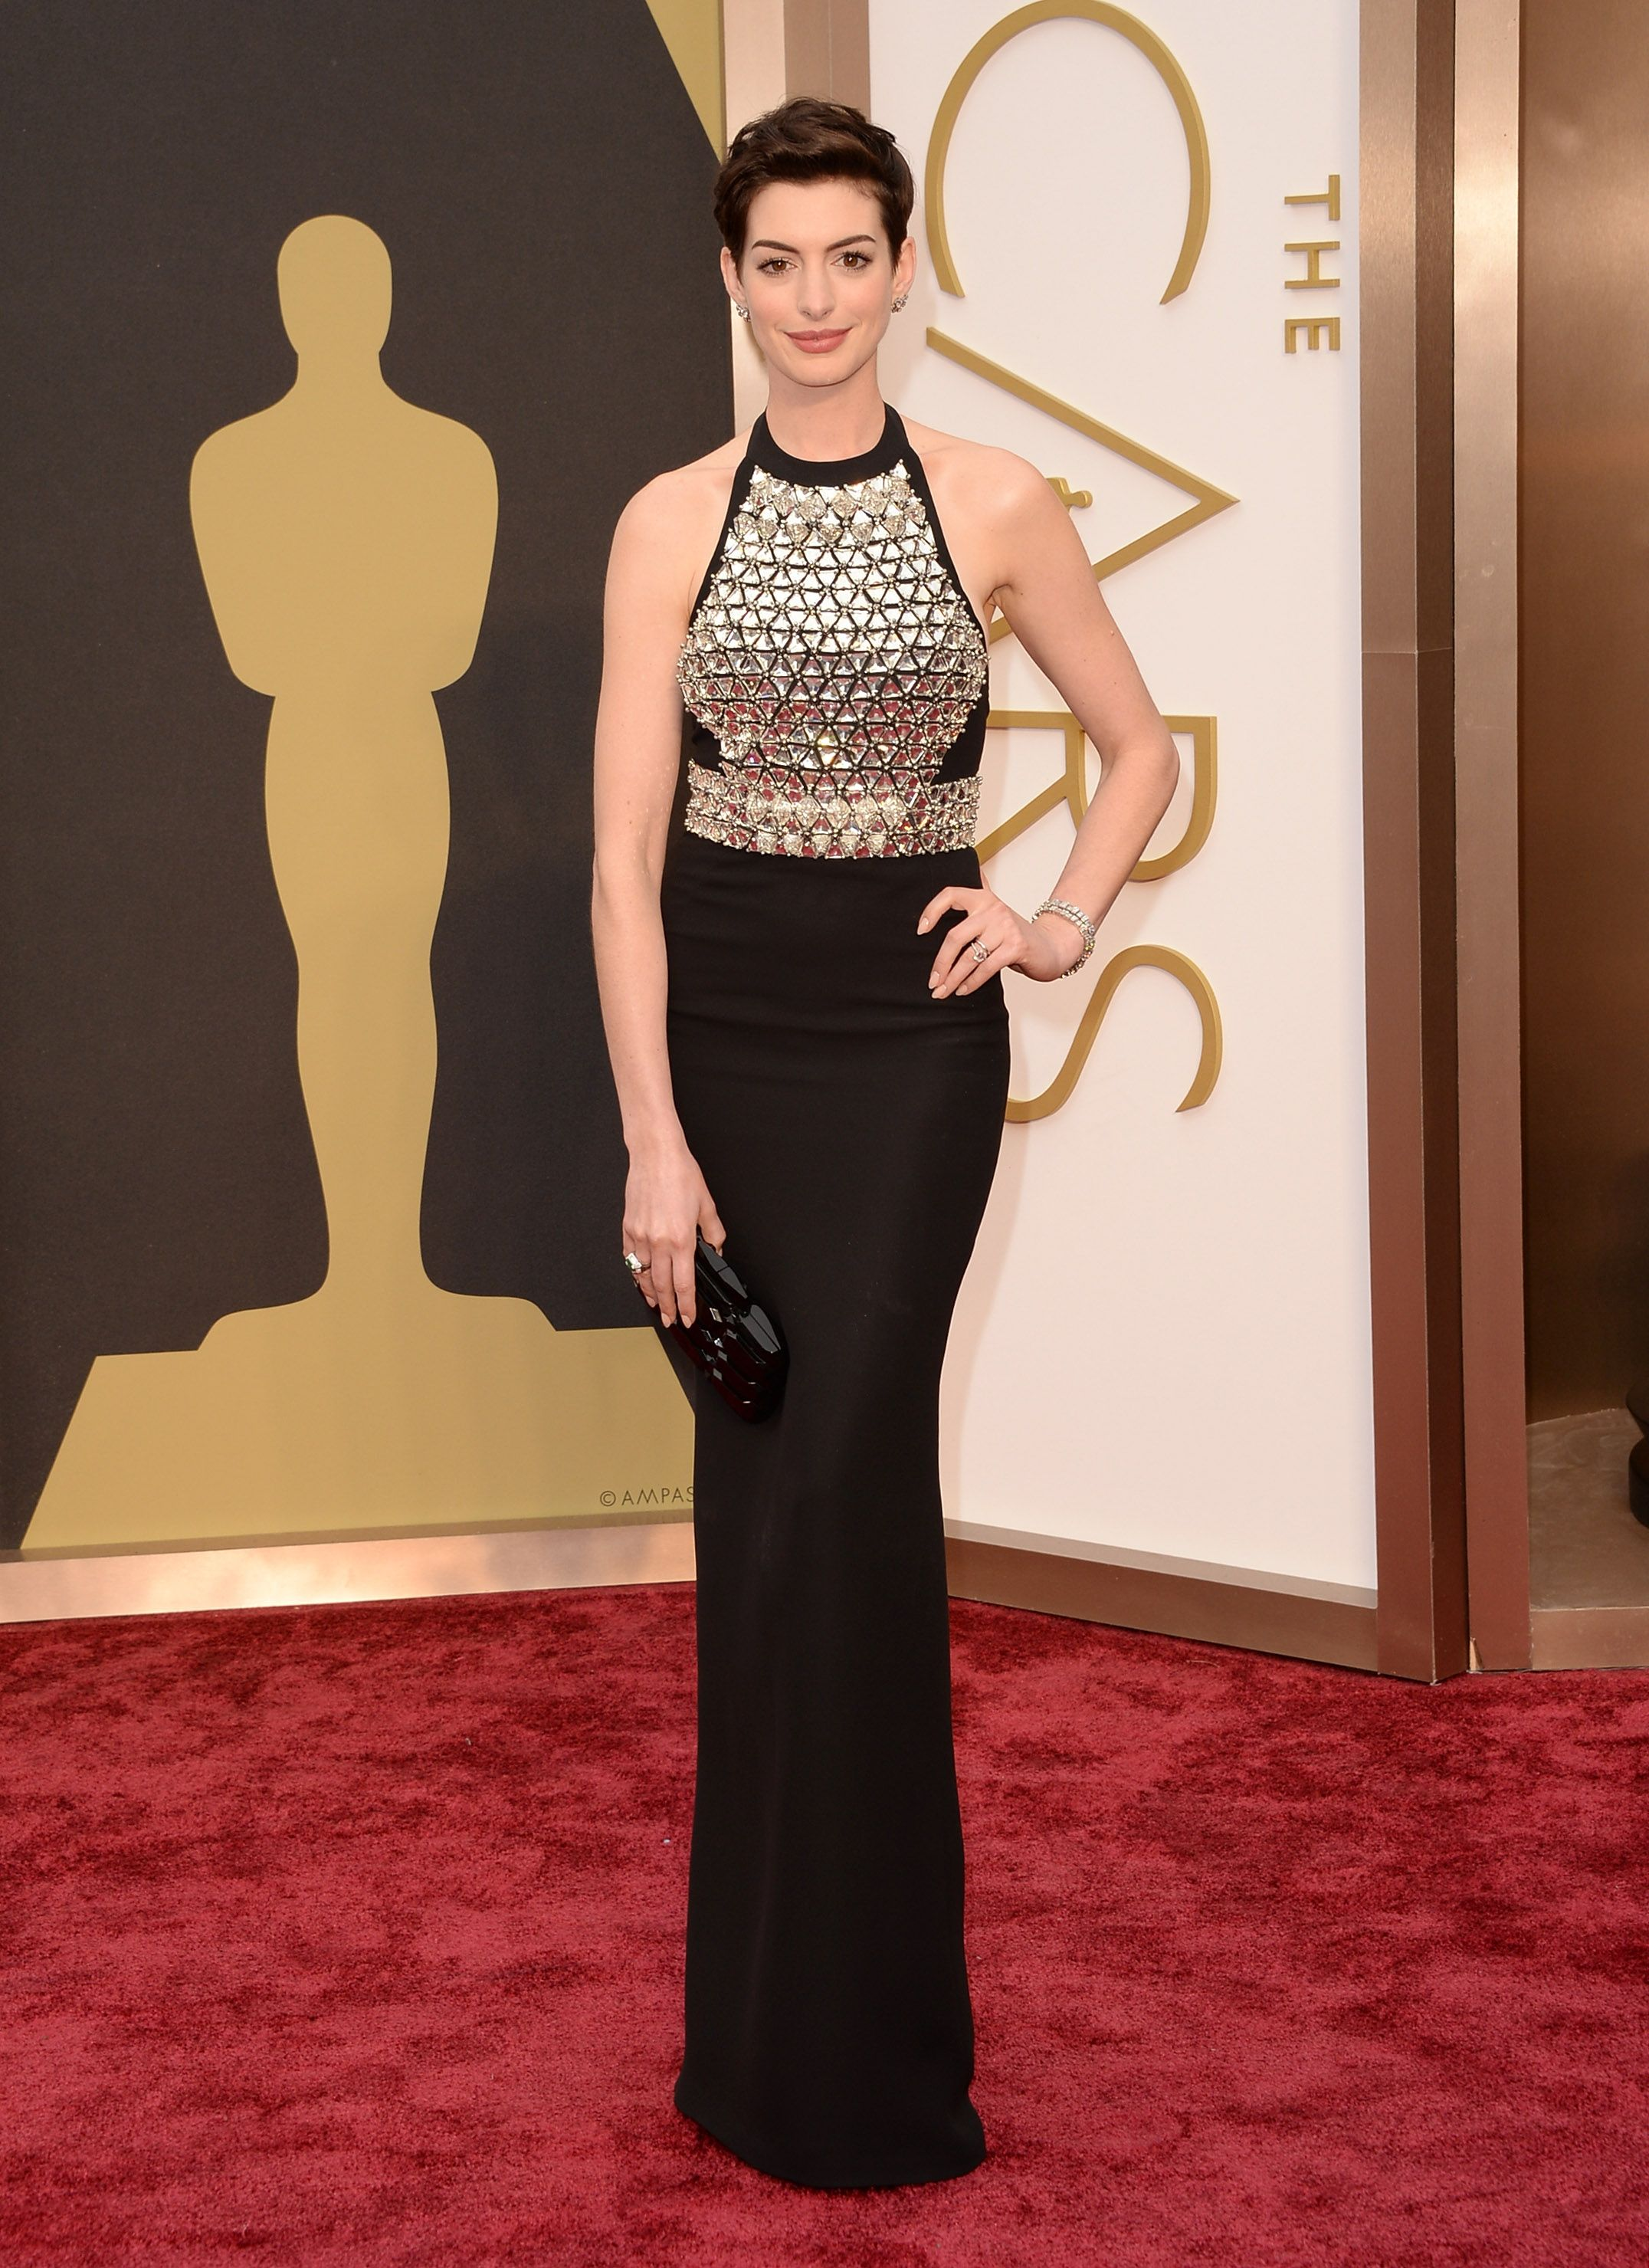 Anne Hathaway shines in a crystal-embroidered Gucci gown at the 86th Annual Academy Awards